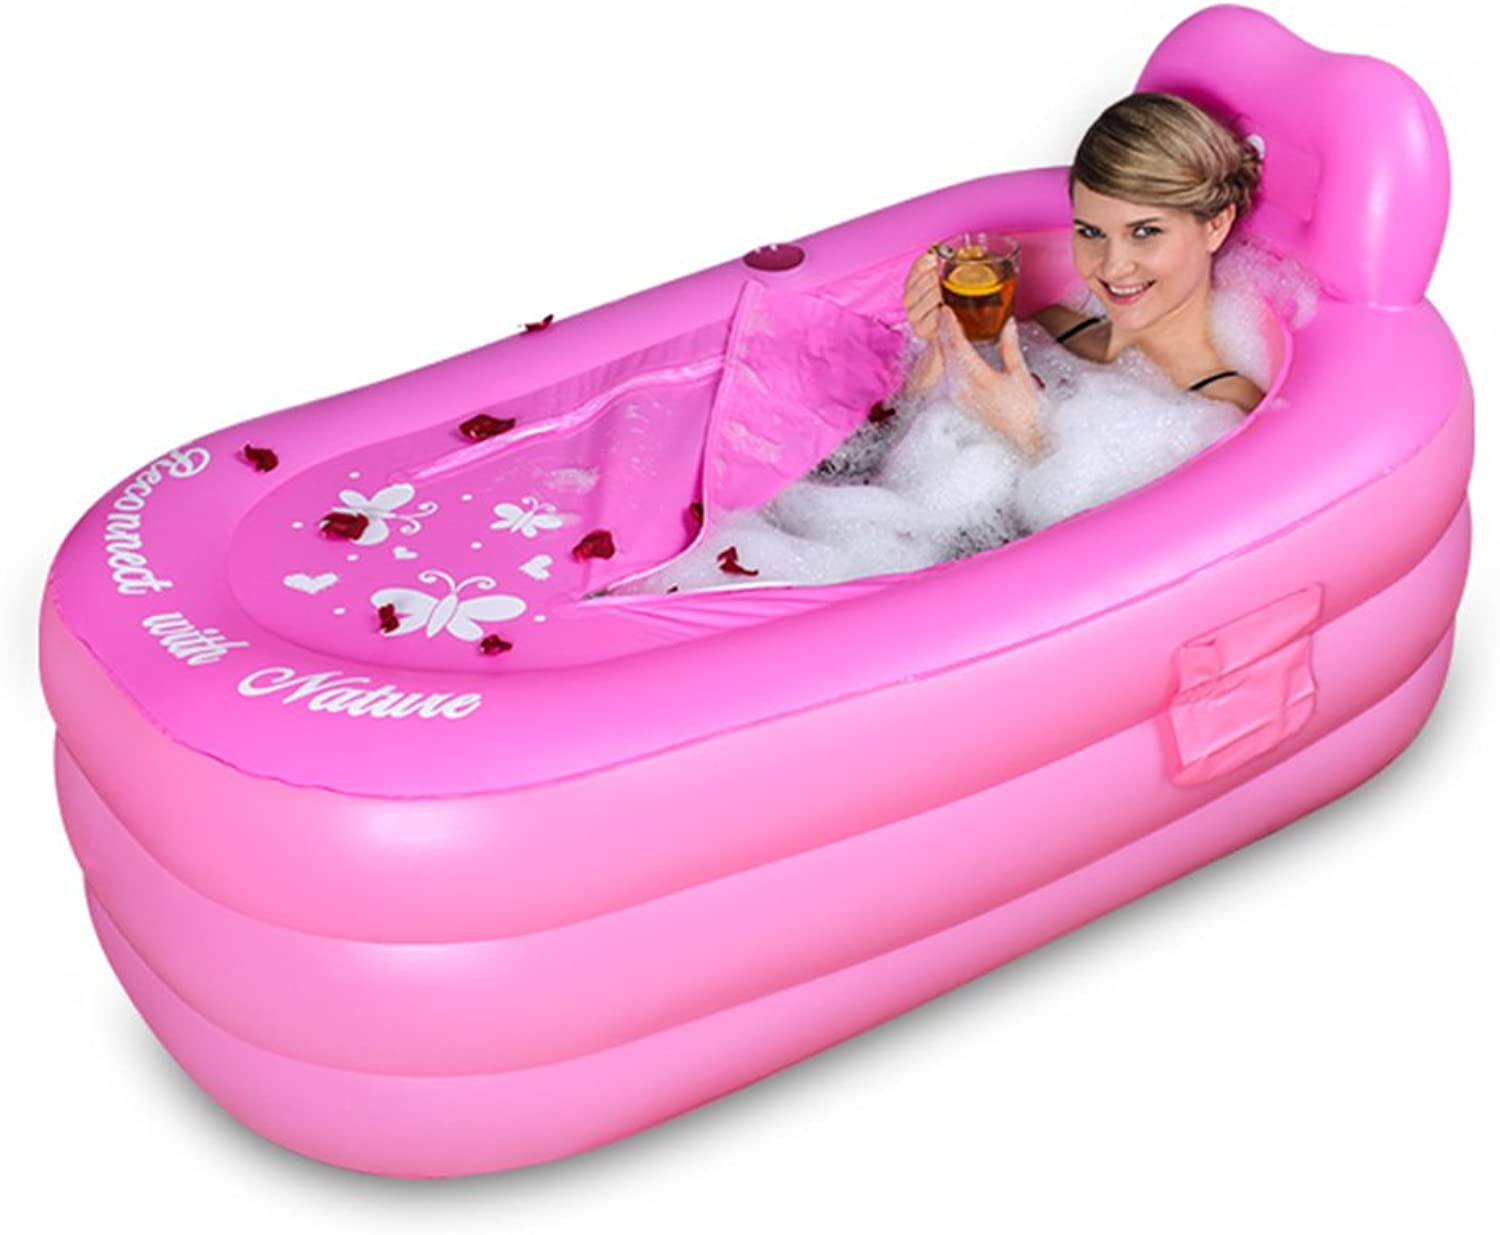 Bathtubs Soaking Baths Inflatable adult Thickening Family shower Insulation swimming pool (color   Pink, Size   130  80  70 cm)